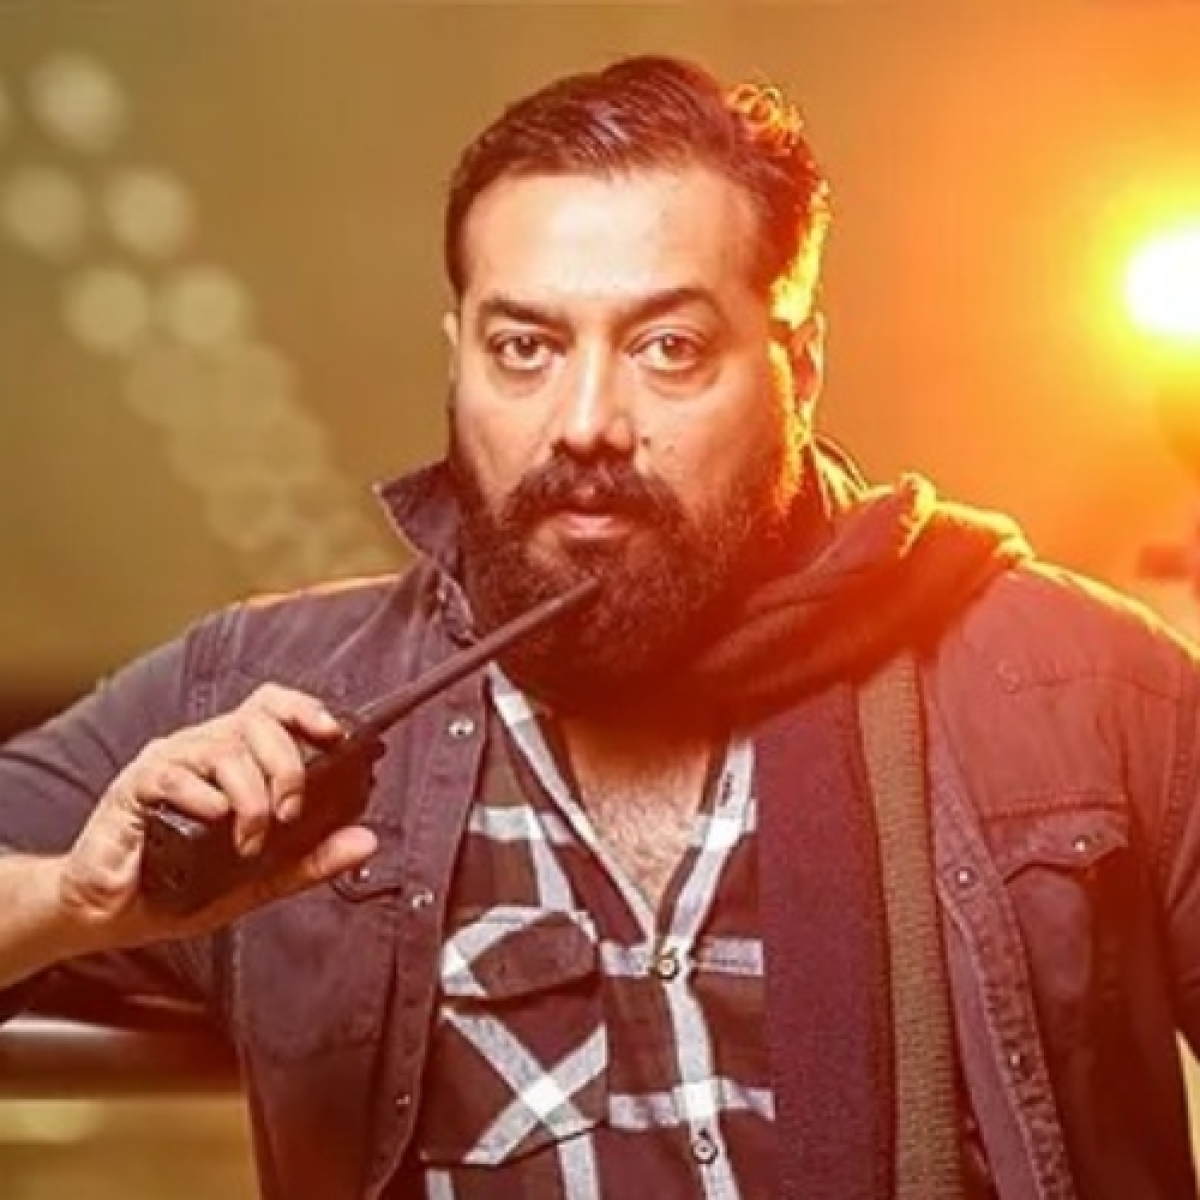 Anurag Kashyap's Birthday Special: 'Gangs of Wasseypur', 'Manmarziyaan' and other gems by the director